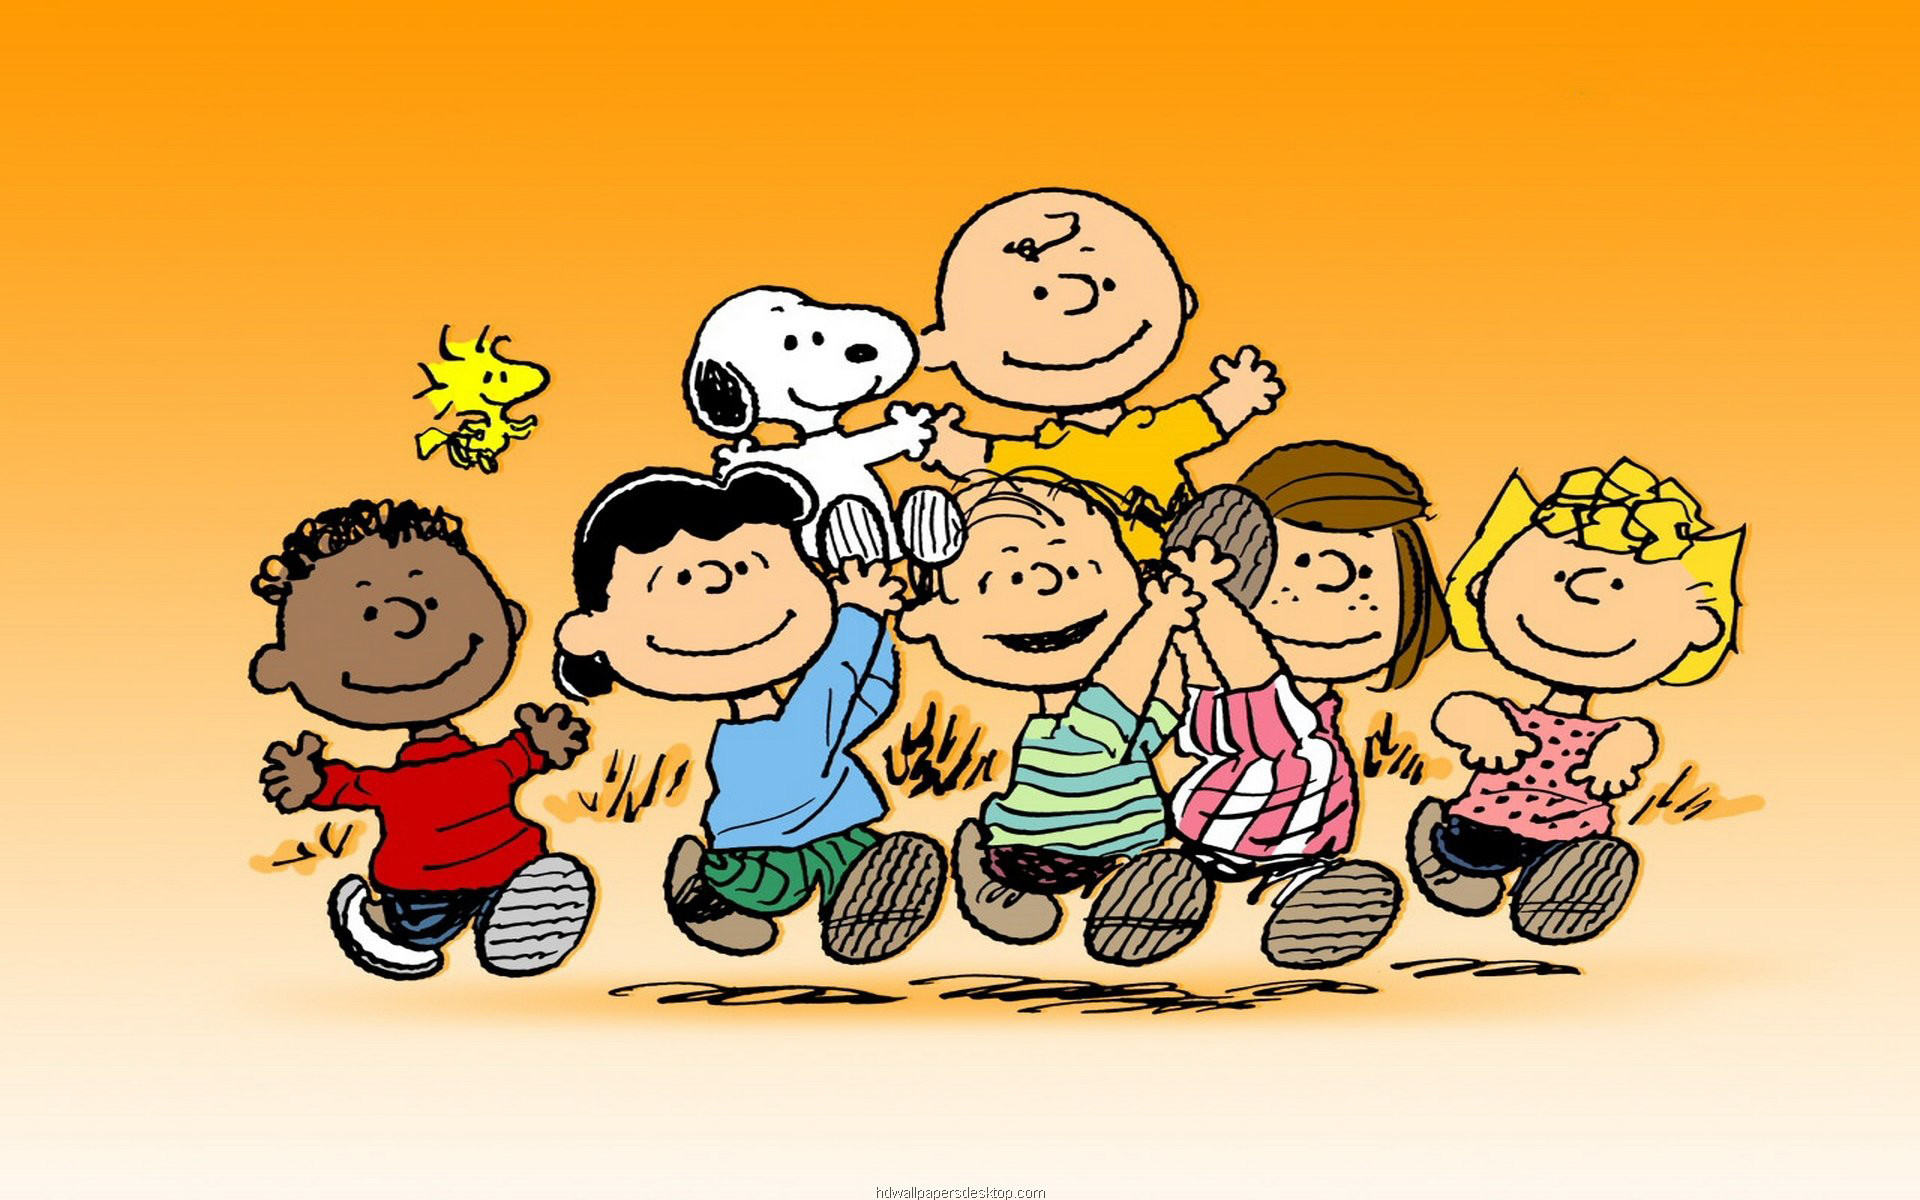 Snoopy wallpaper cartoon wallpapers cartoons image images imagepages.